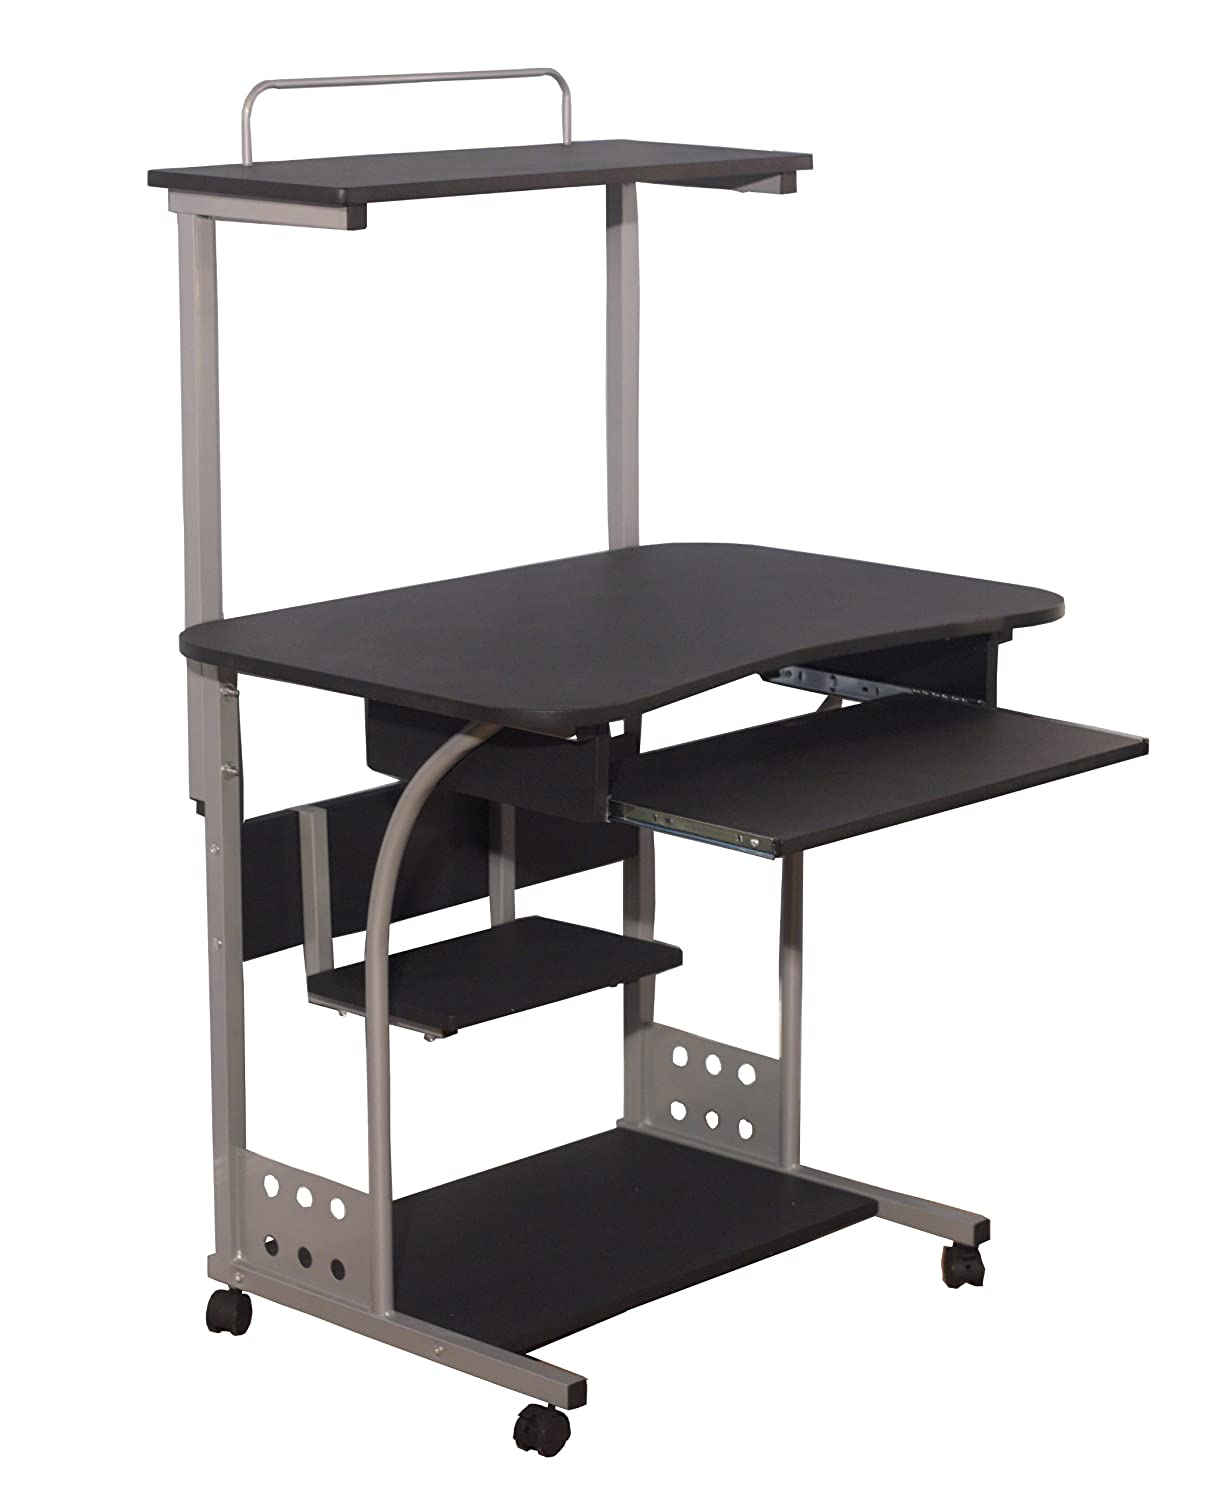 Target Marketing Systems Modern Computer Tower With Shelf and Keyboard Space, 4 Caster Wheels, Black